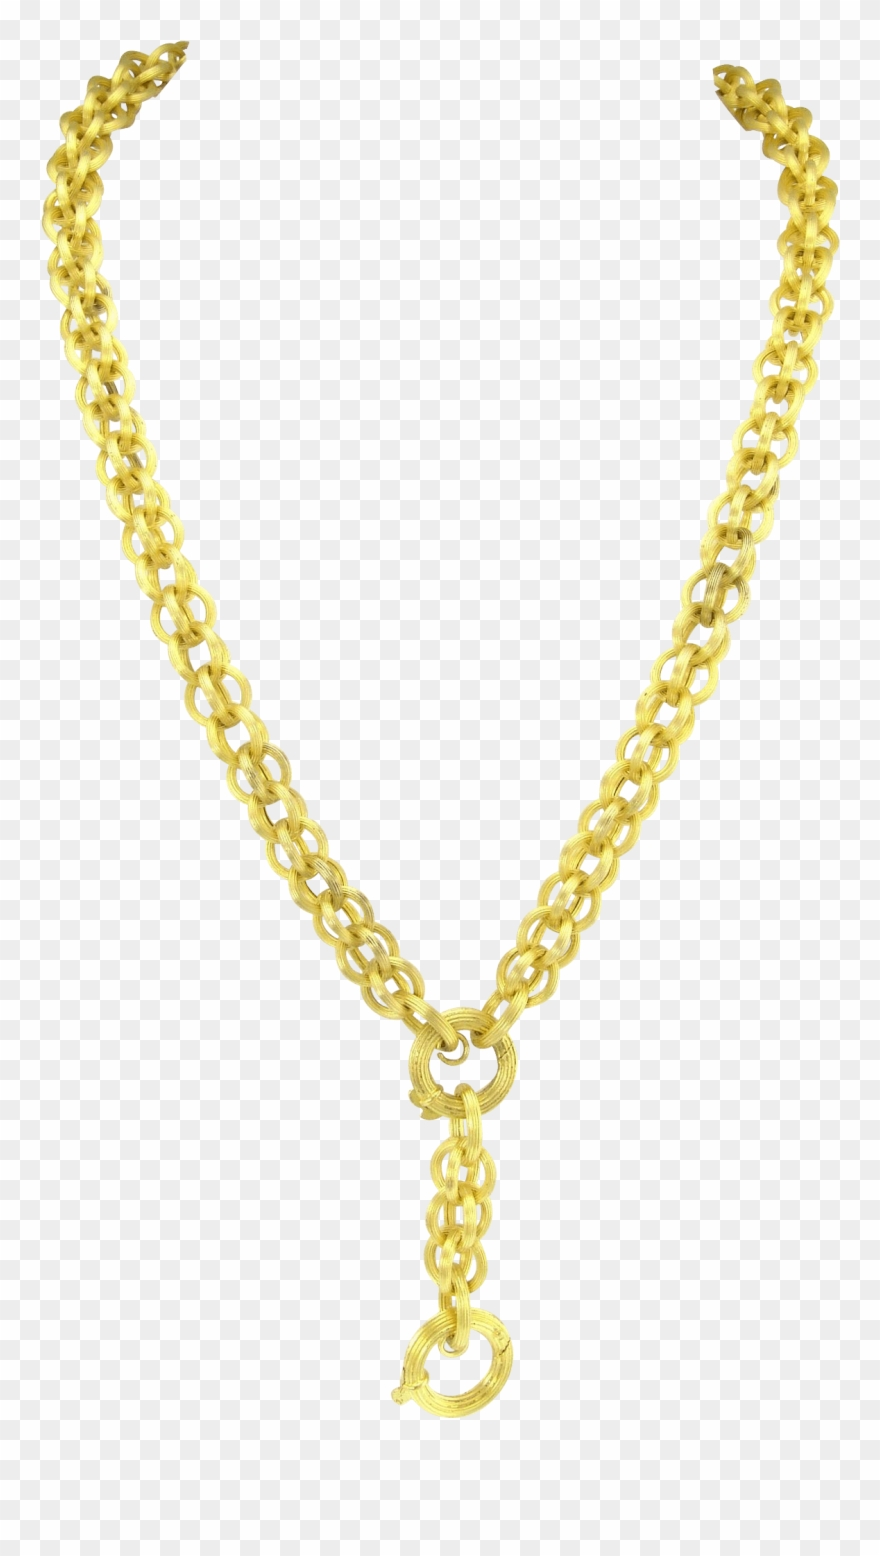 Gold Chain Clip Art.